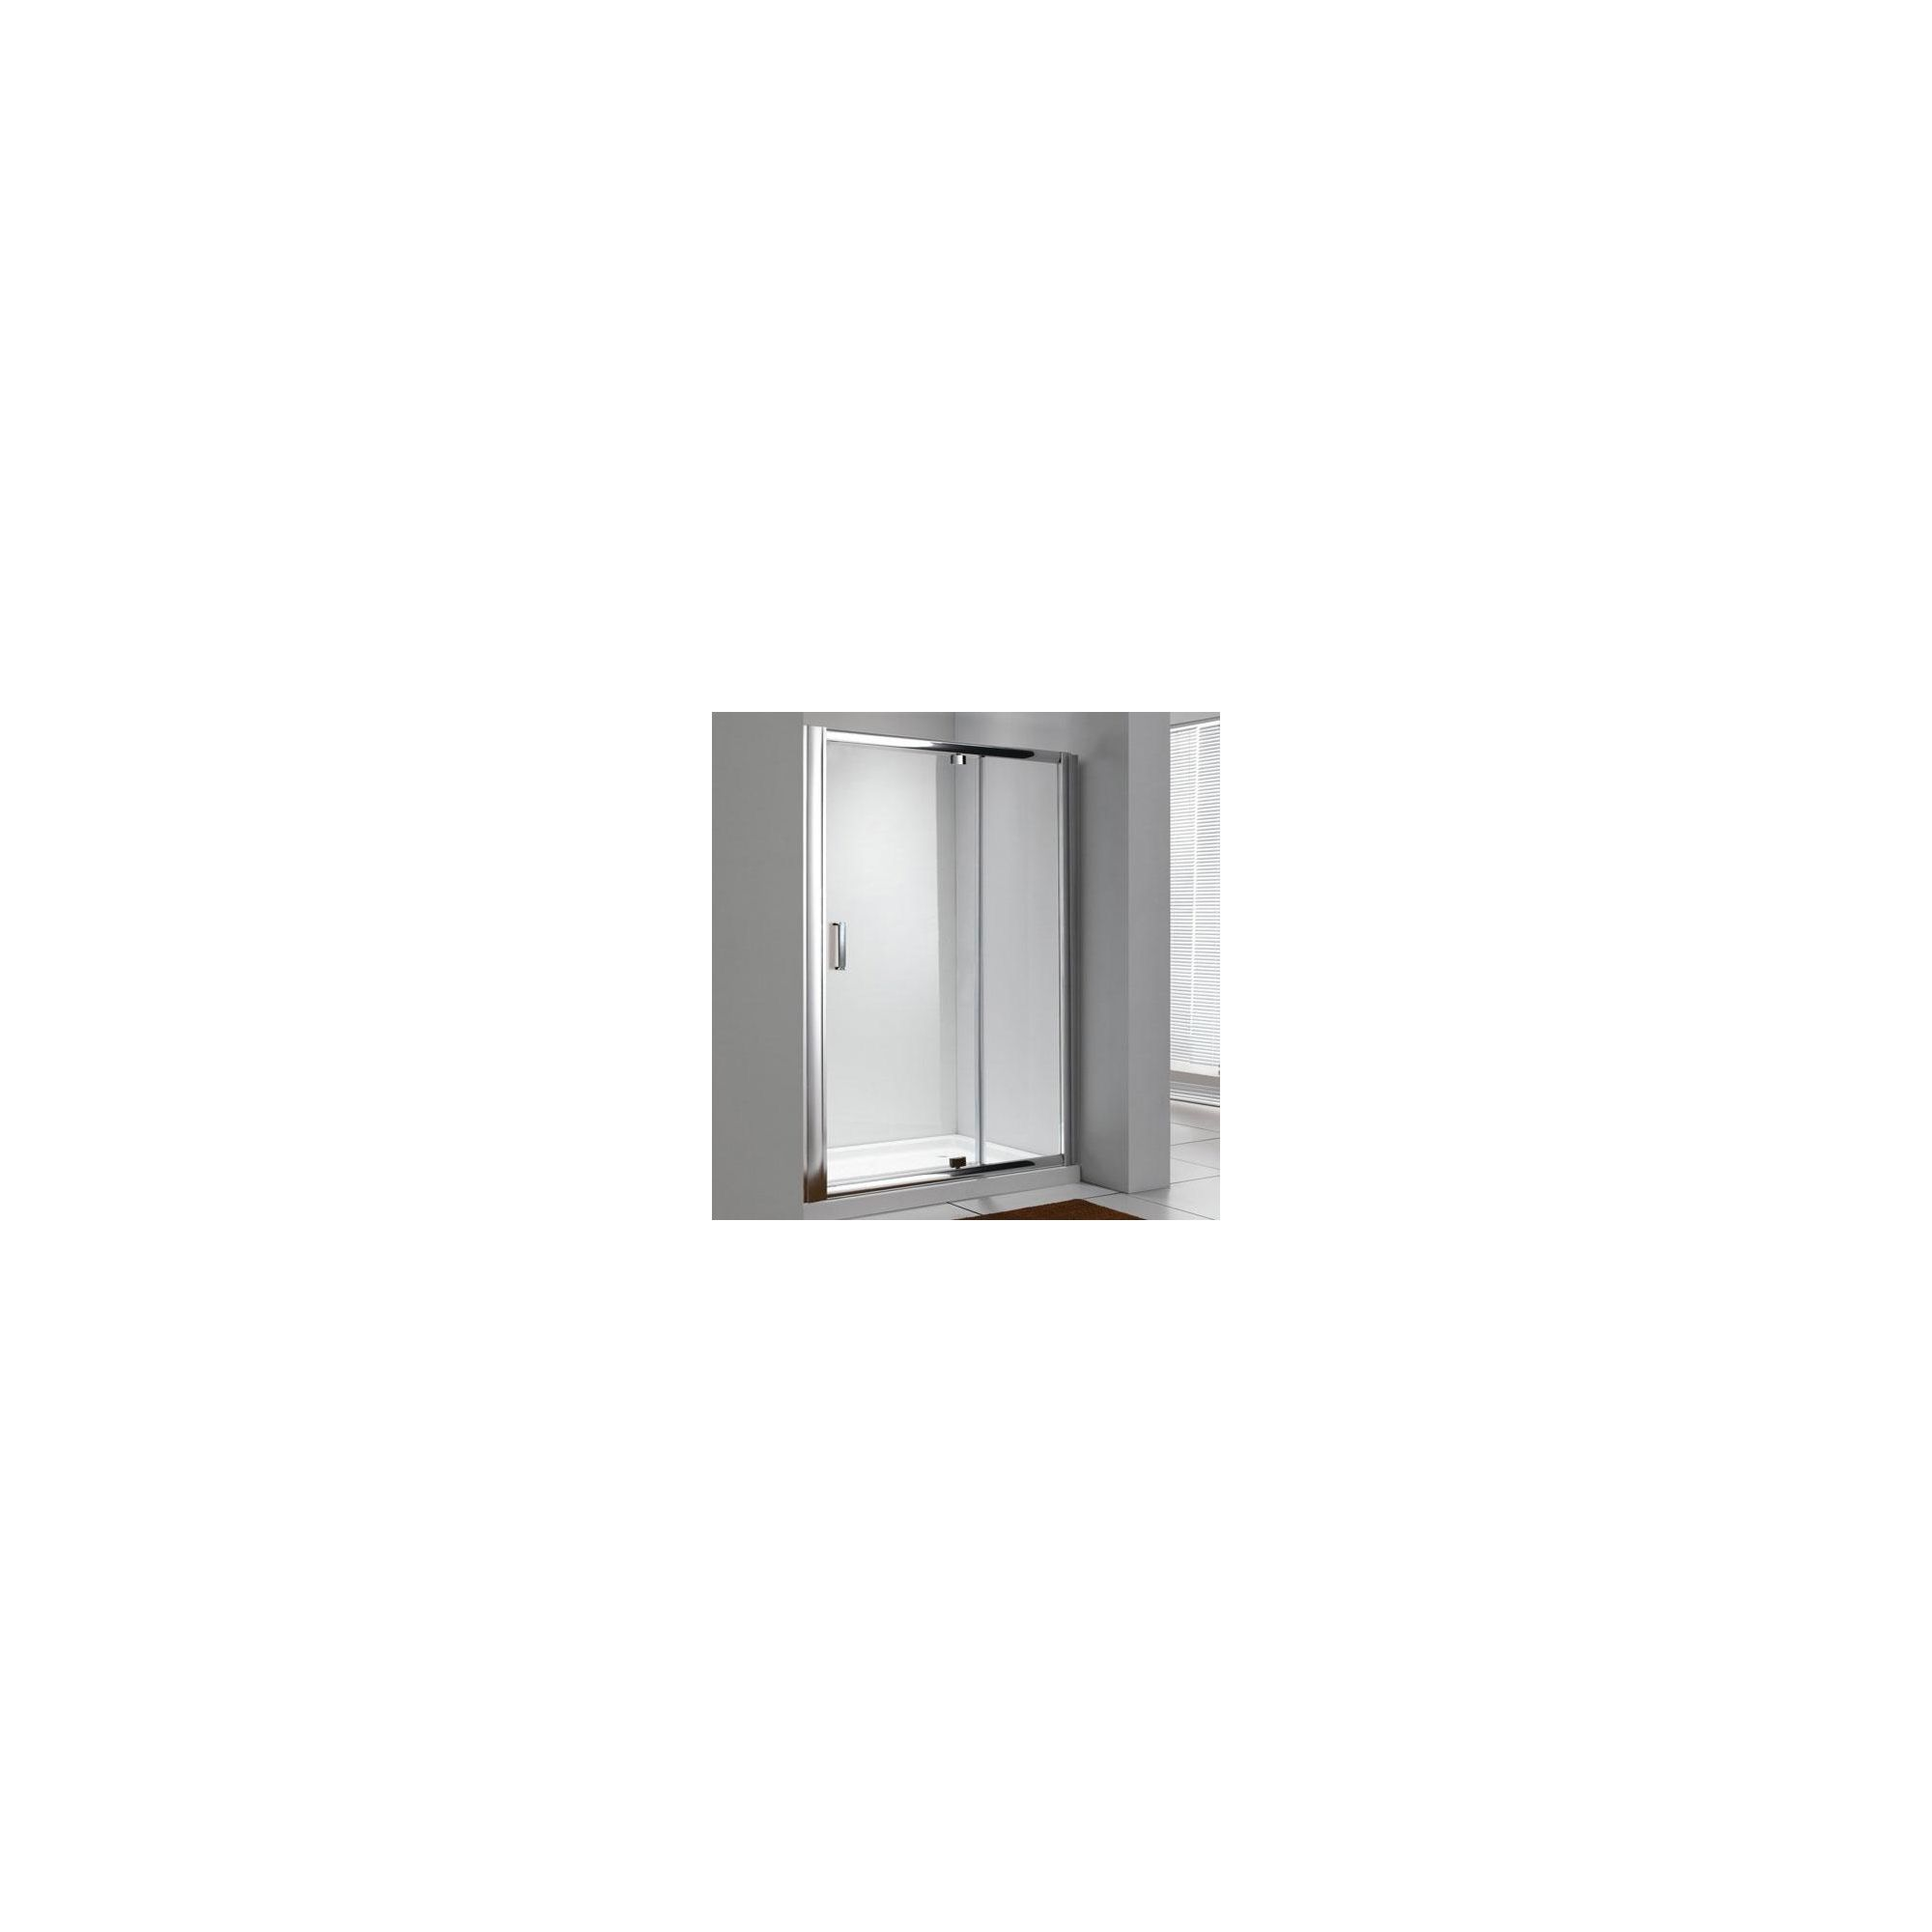 Duchy Style Pivot Door Shower Enclosure, 1200mm x 760mm, 6mm Glass, Low Profile Tray at Tesco Direct